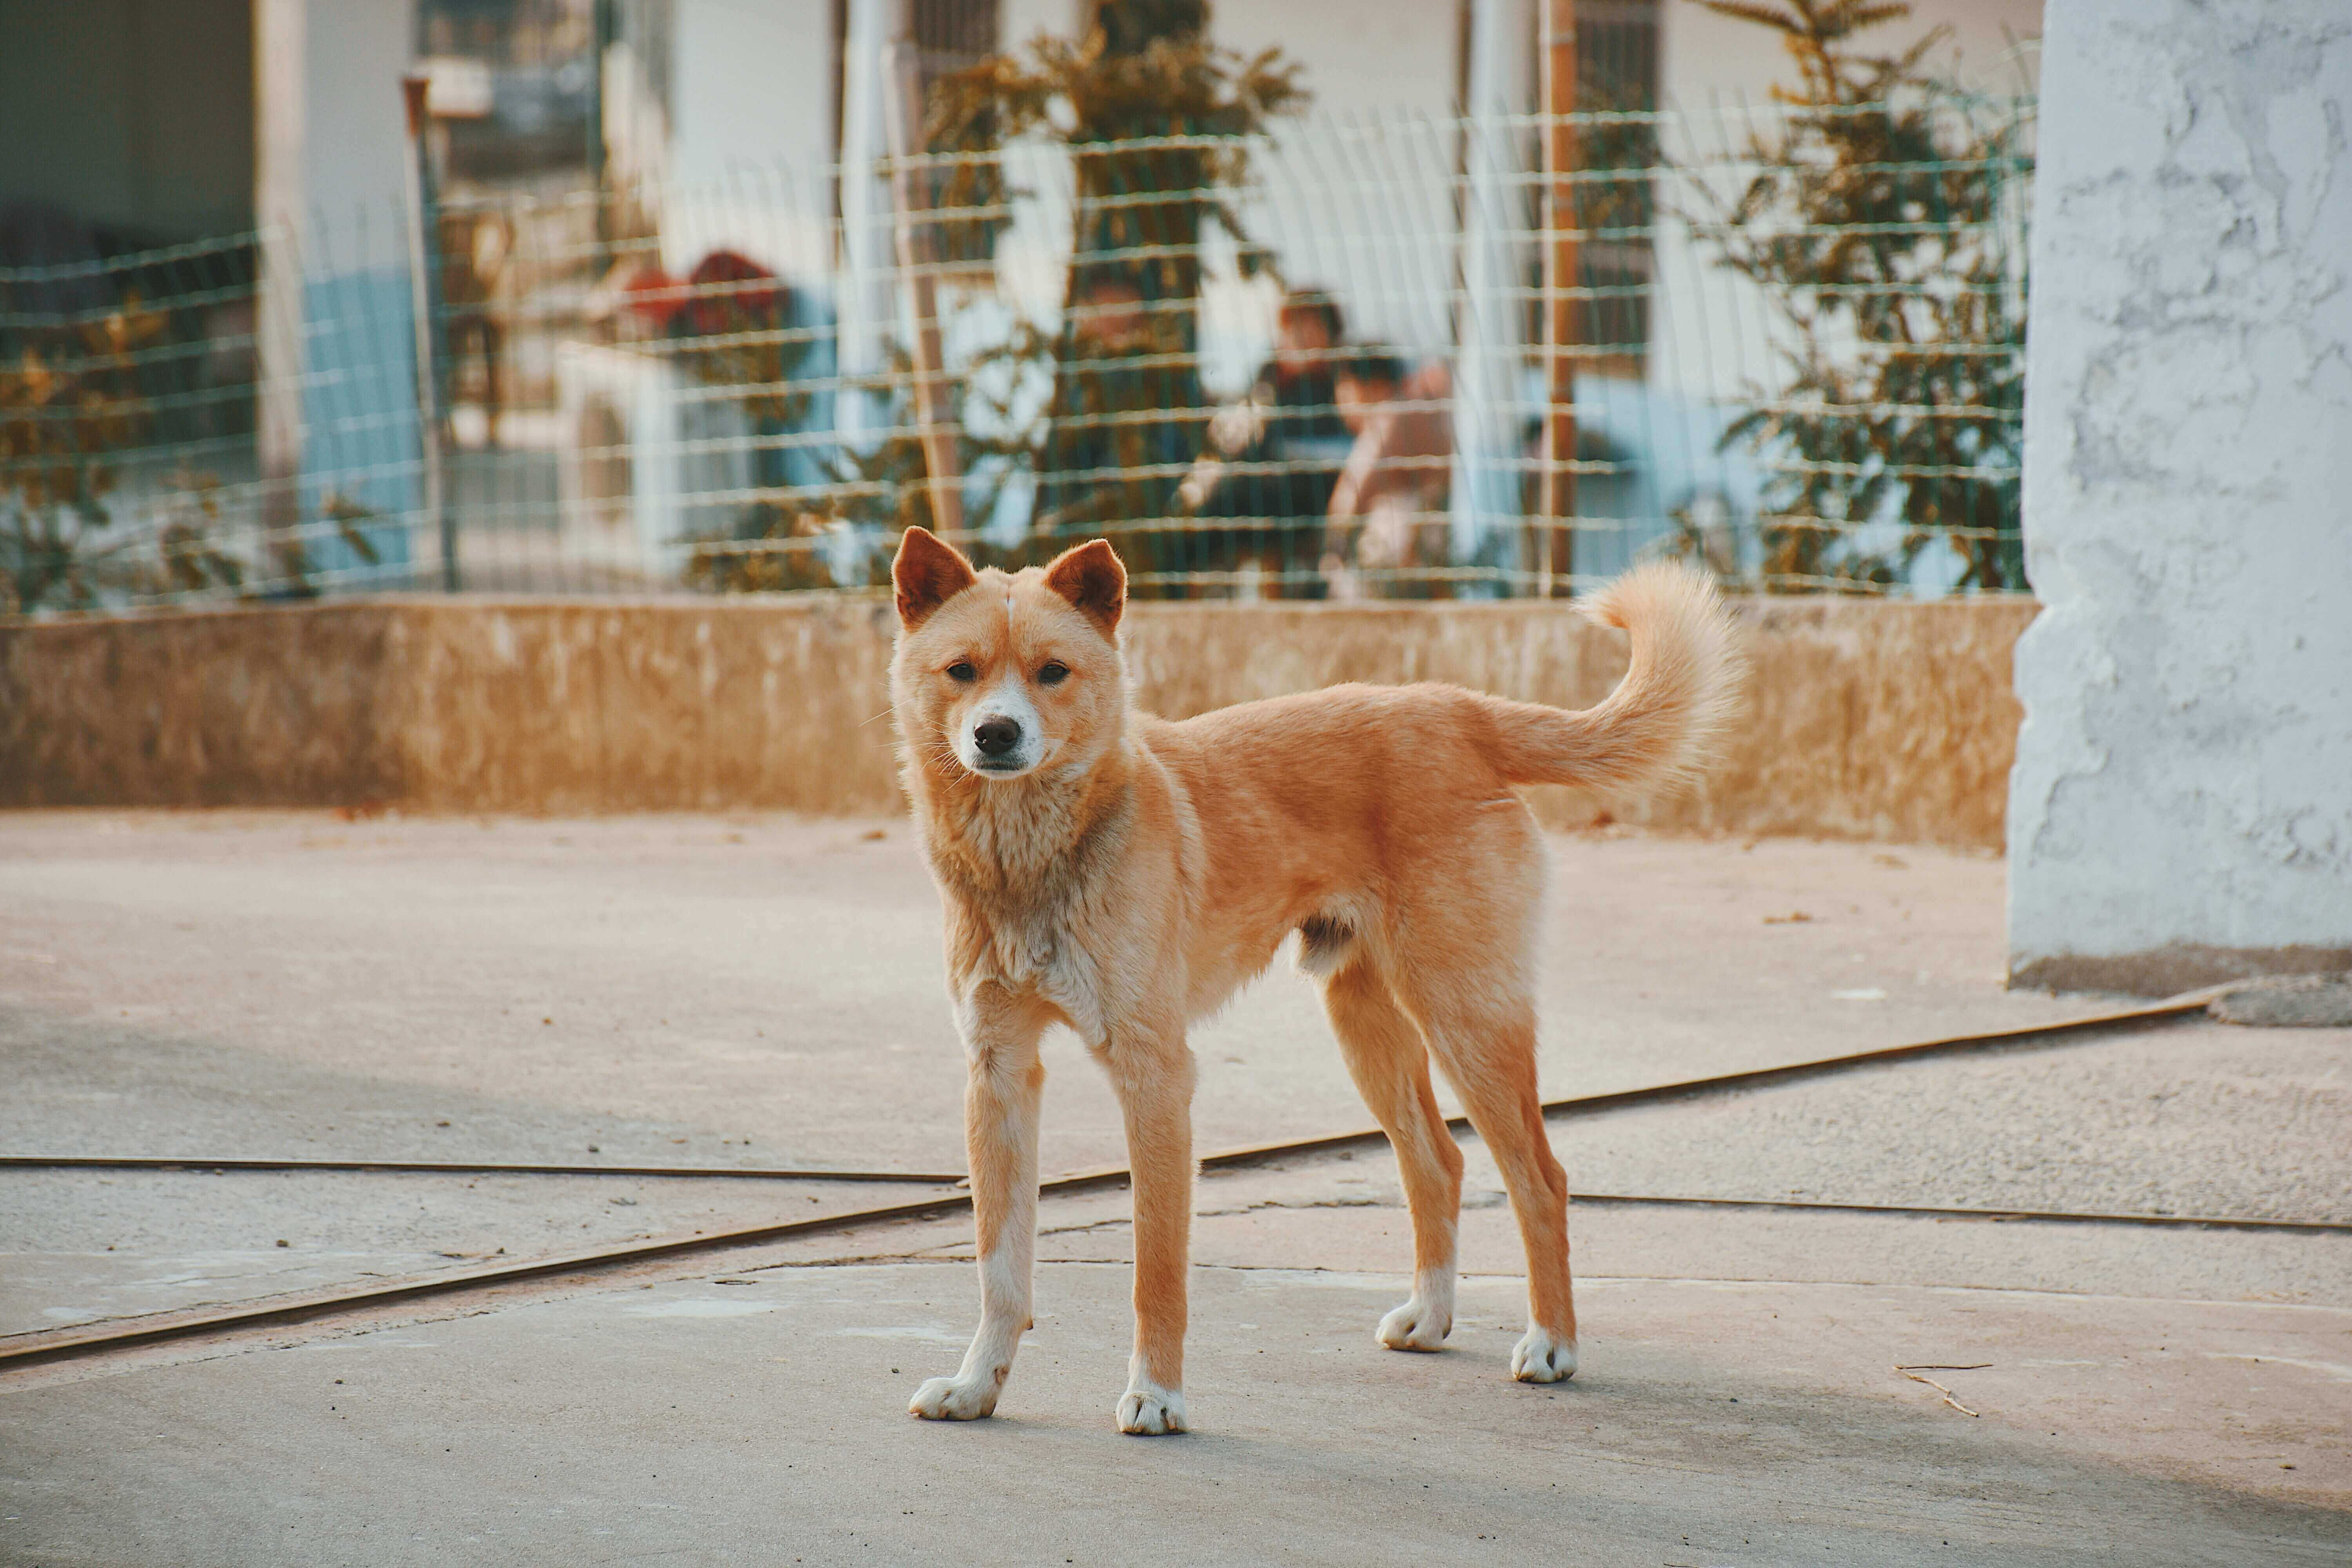 Dogs standing on the street